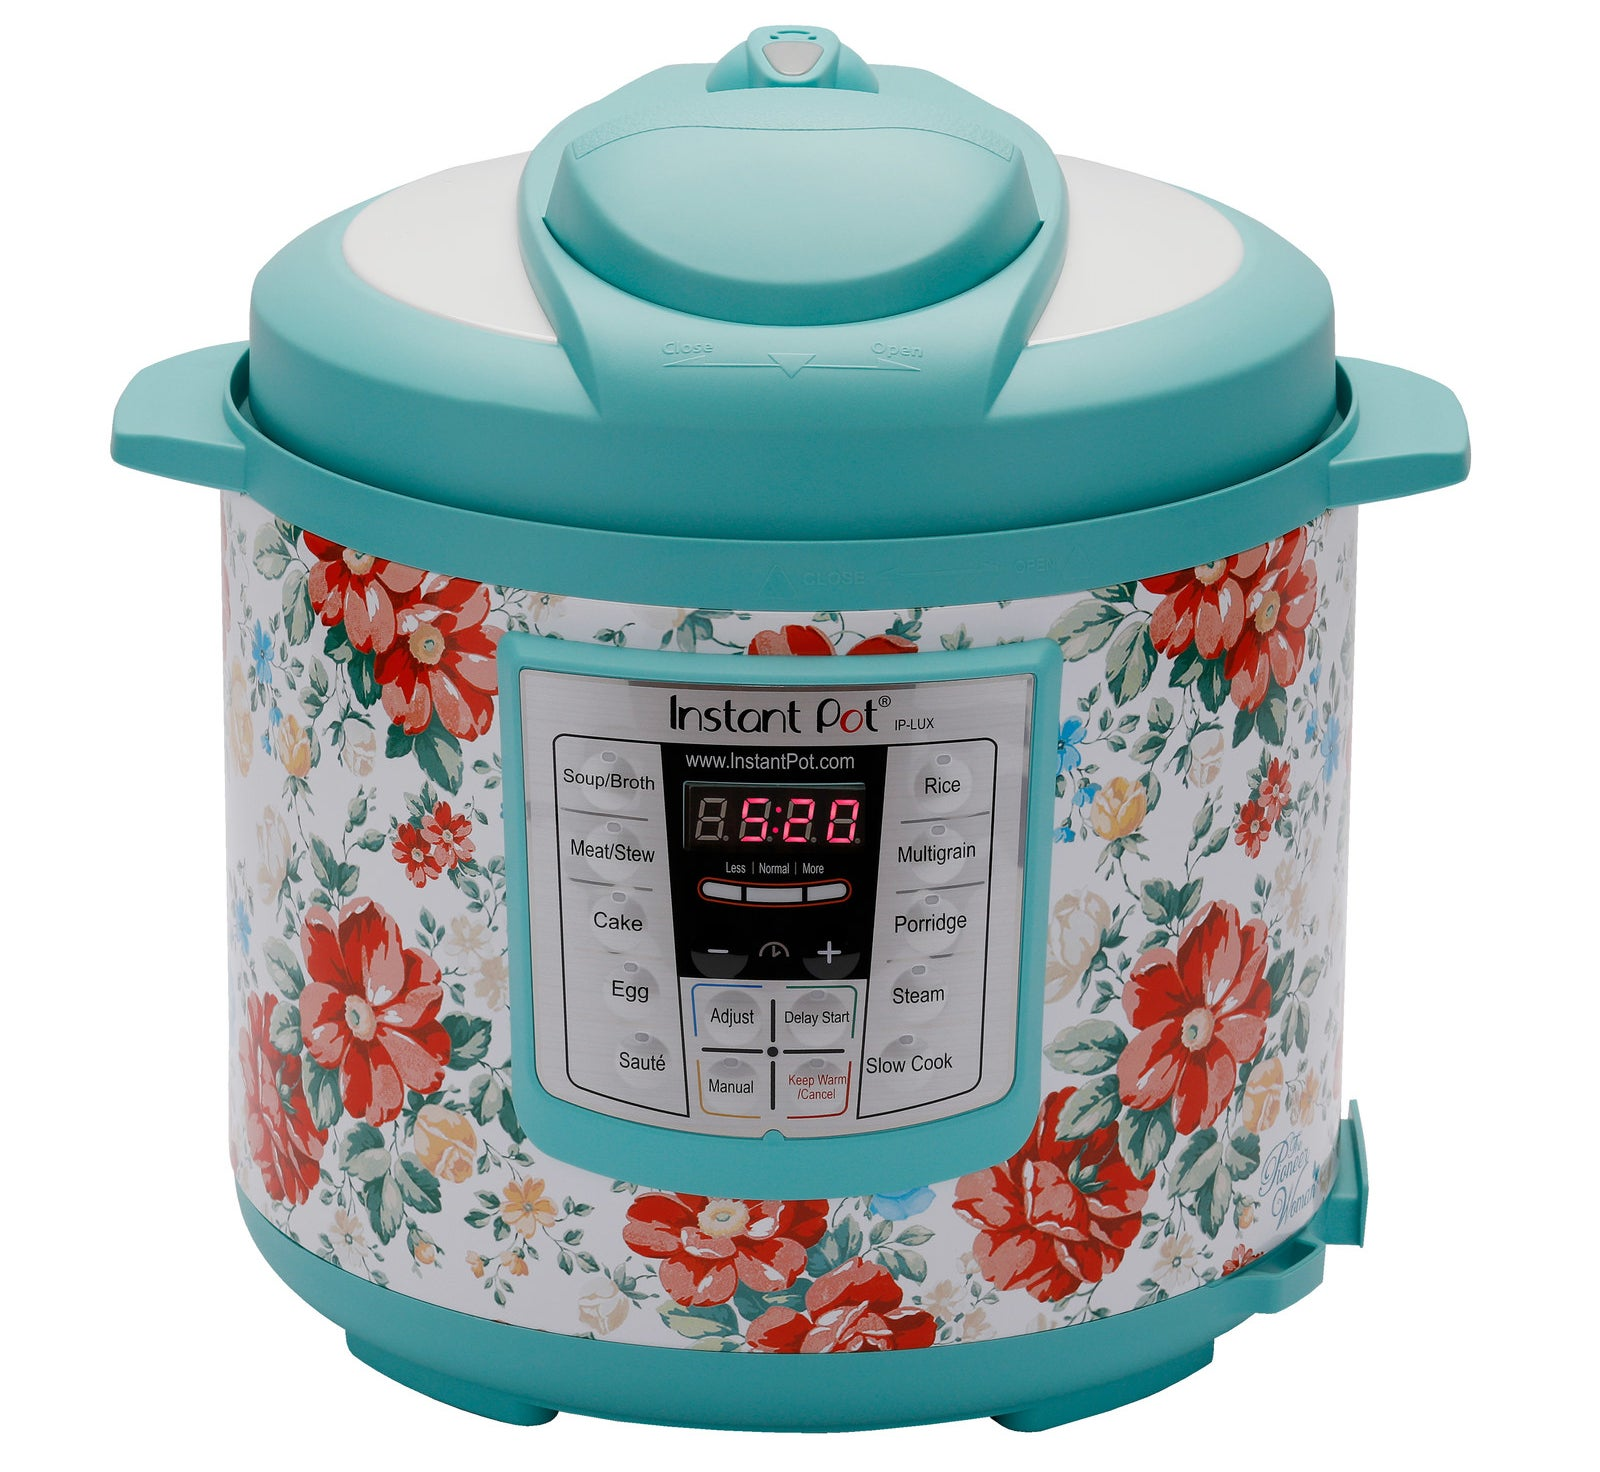 """It features 12 built-in programs, speeds up normal cooking speeds by two to six times, and a has a three-ply inner pot stainless steel bottom.Promising review: """"Instant pots are not only one of the most used cooking tools in my kitchen, but also one of the most convenient ways to cook many dishes. Not only do they have a wide array of functions but these special edition versions are sure to brighten up your counter top as well! All it takes is some Googling to find awesome recipes and most of them can all be cooked by placing all the ingredients in the pot and setting the function and timer. To go the extra mile, some recipes call for using steam racks and/or combining two dishes to cook at once, (usually rice and something else). I am still learning and hope to master all the functions."""" —DizzleChizzleGet it from Walmart for $99 (available in two colors)."""